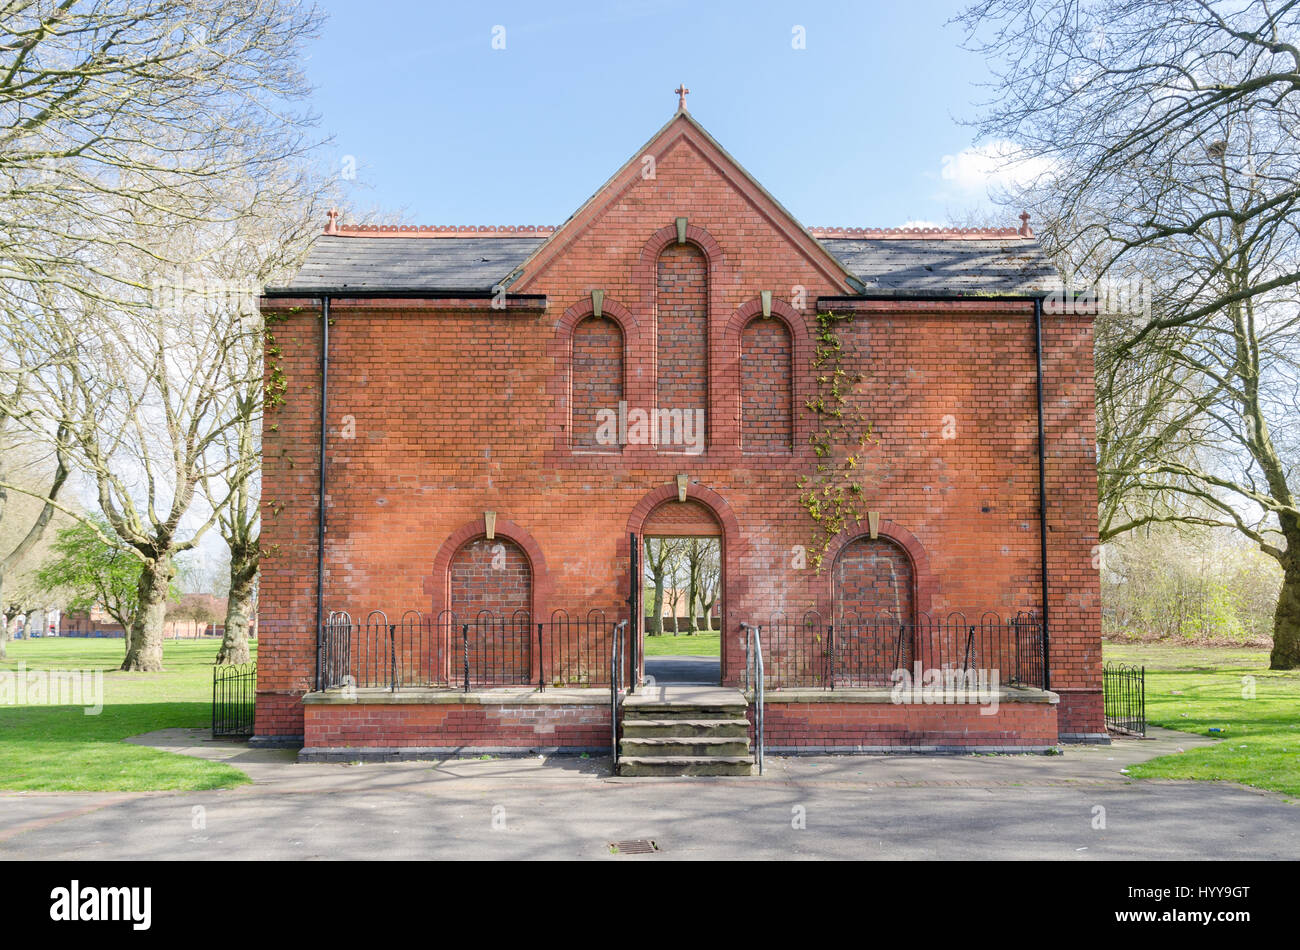 Old Victorian bandstand in Summerfield Park in Winson Green, Birmingham on a sunny spring day - Stock Image